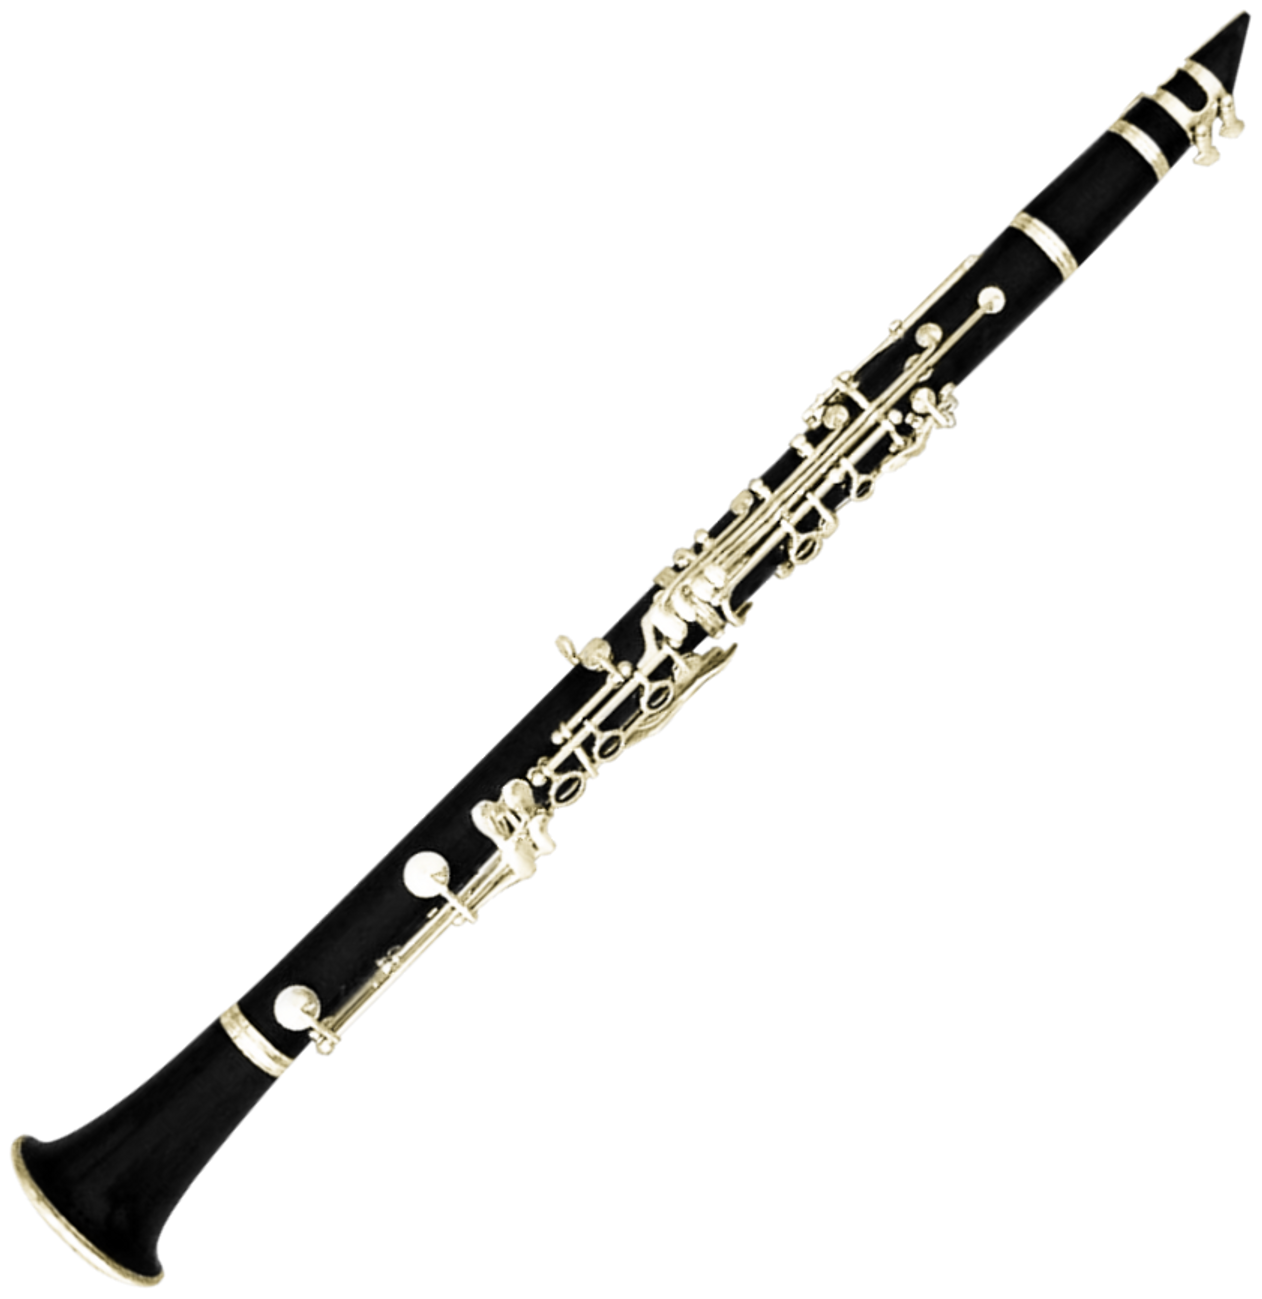 Repin if u play. Clarinet clipart black and white